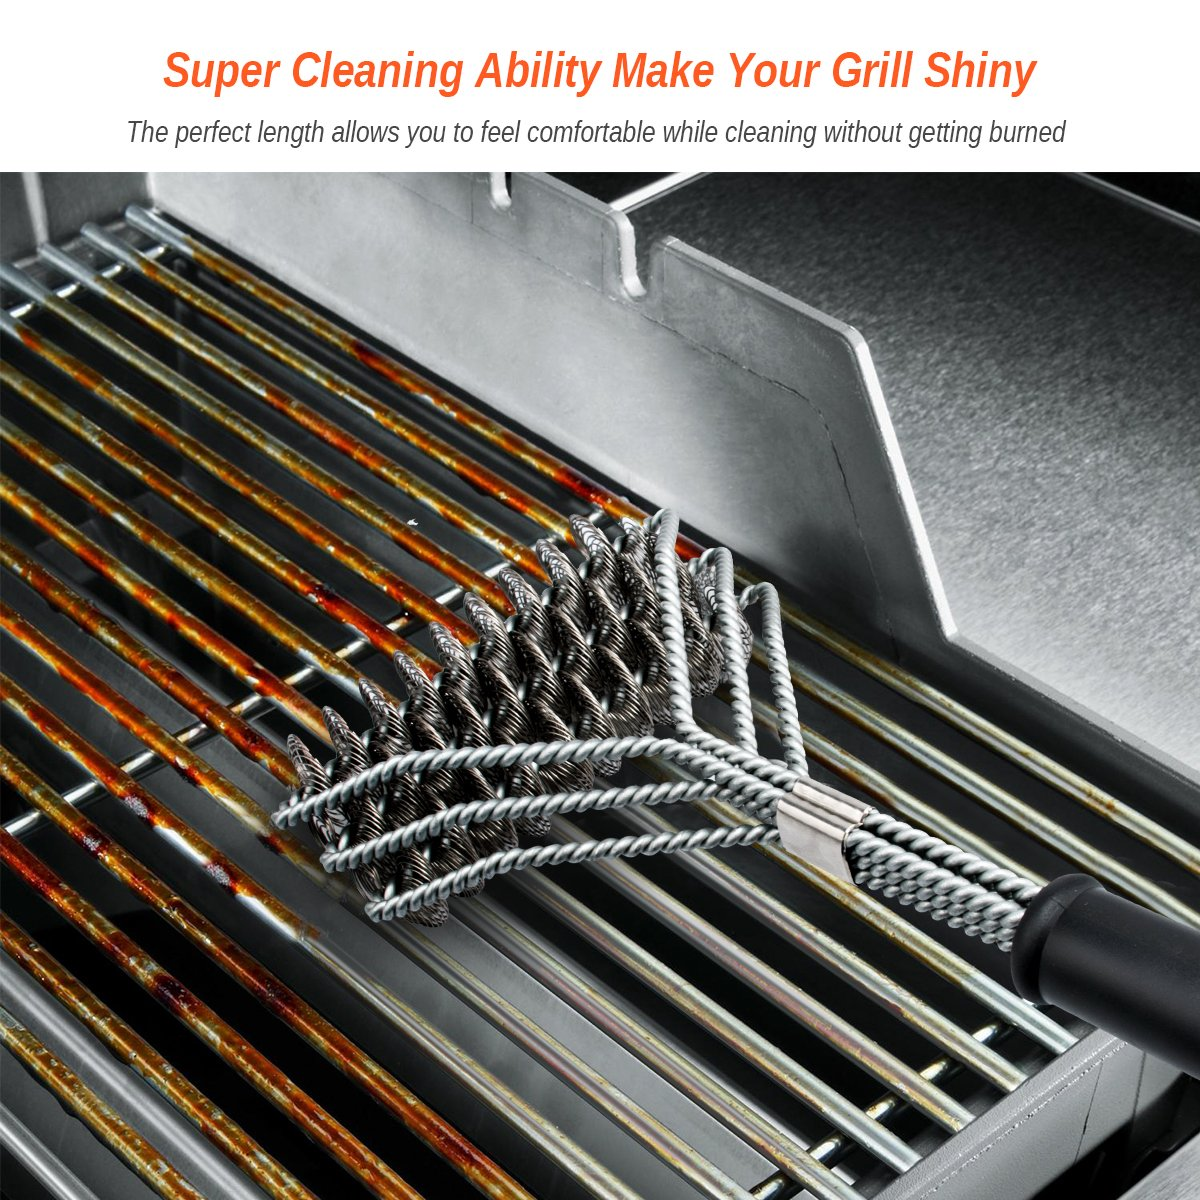 Grill Brush and Scraper Grill Brush Bristle Free - Grill Brsh 18'' for Porcelain Grates Outdoor Stainless Steel Grill Cleaner Tool - BBQ Safe Scraper Barbeque Cleaning Accessories Stainl … by RuxBrush (Image #2)